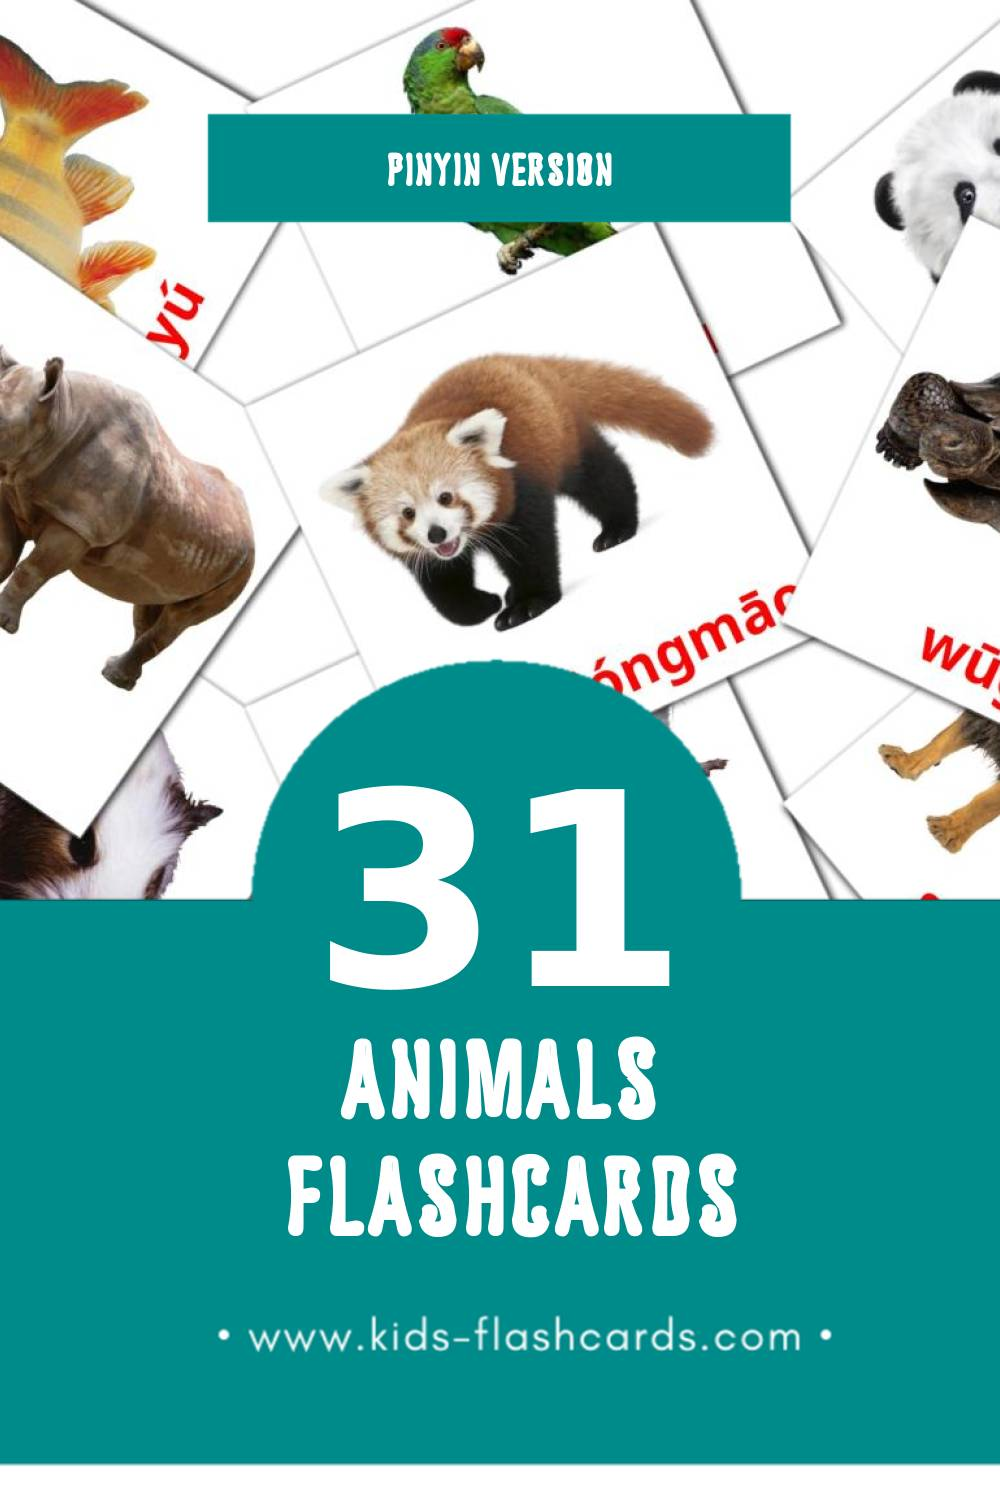 Visual Dòngwù Flashcards for Toddlers (31 cards in Pinyin)